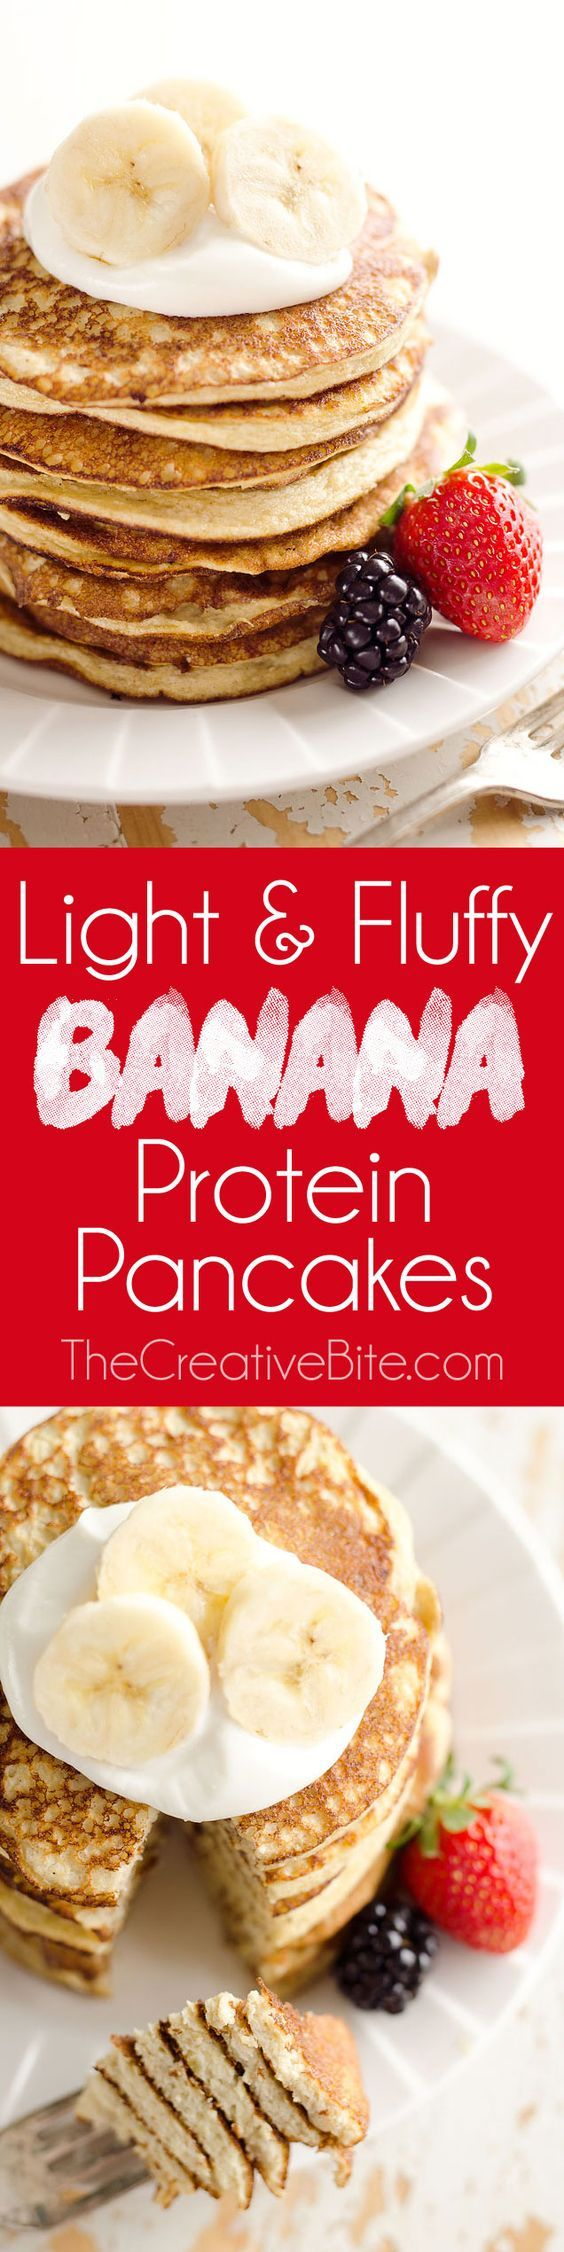 Light and Fluffy Banana Protein Pancakes are a healthy breakfast with five simple ingredients that taste amazing and fill you up! Egg whites protein powder and ripe bananas make up these low-fat and low-carb pancakes for a complete and wholesome meal under 200 calories.